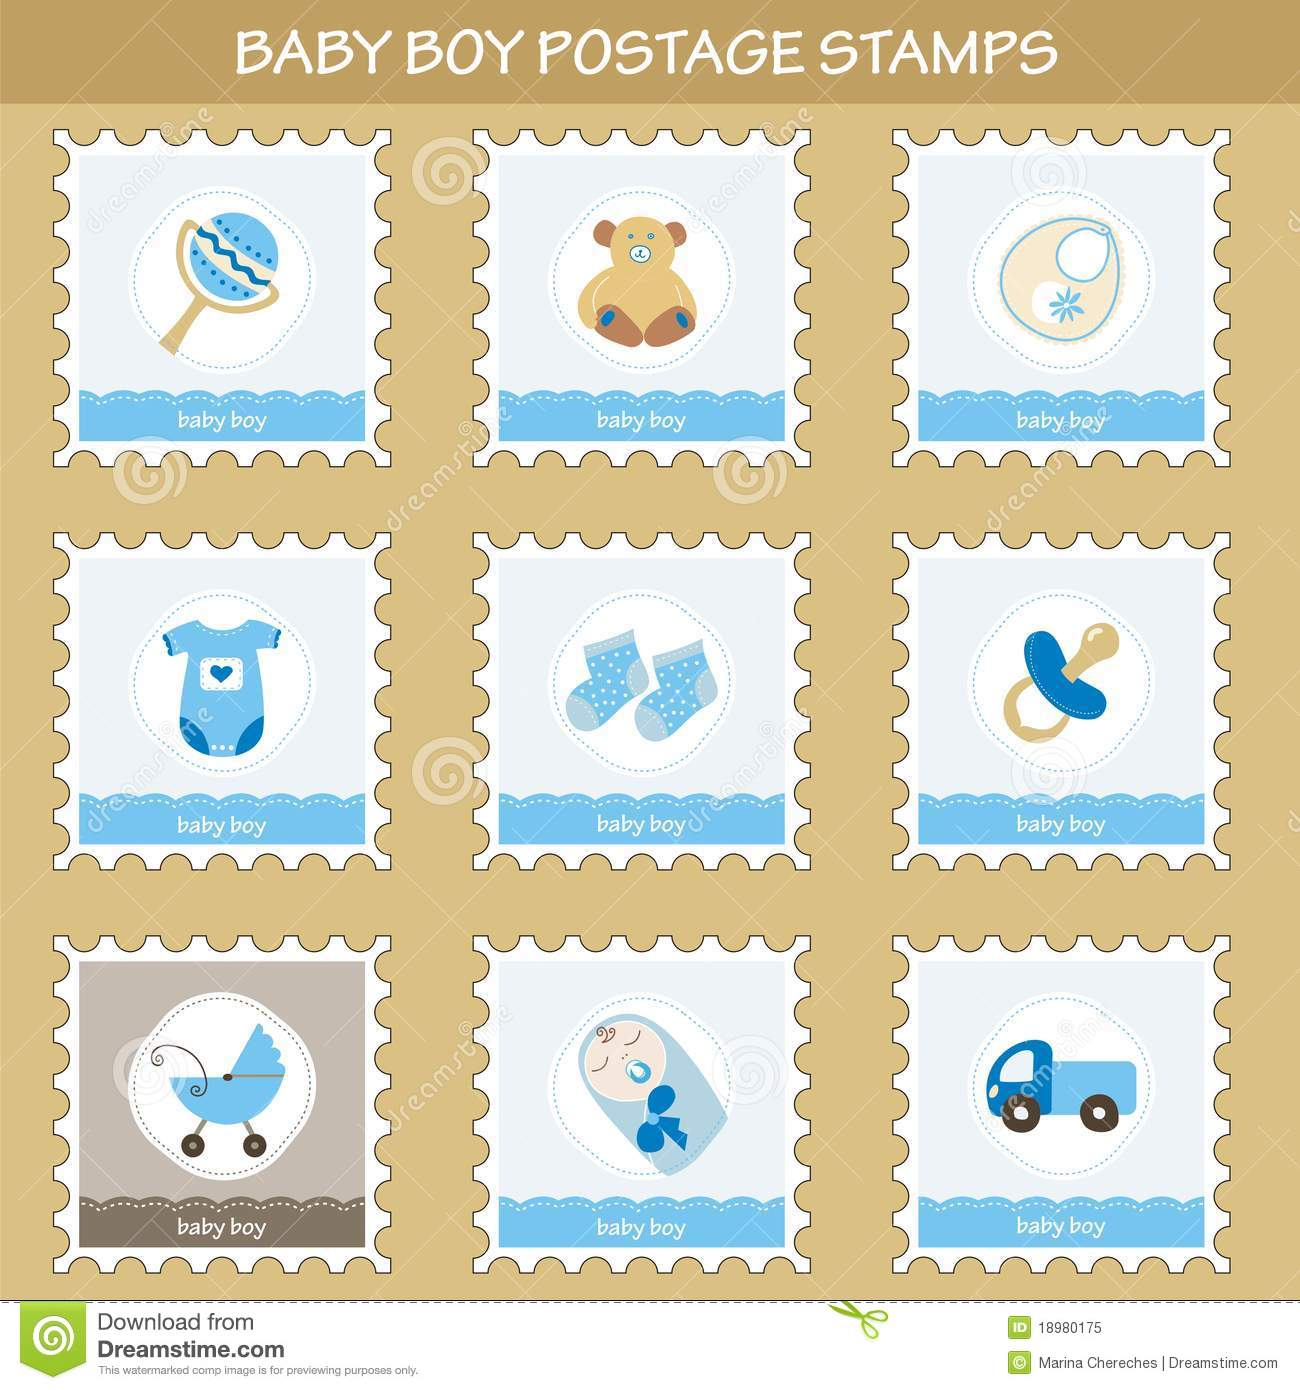 Baby Boy Postage Stamps Royalty Free Stock Photo Image